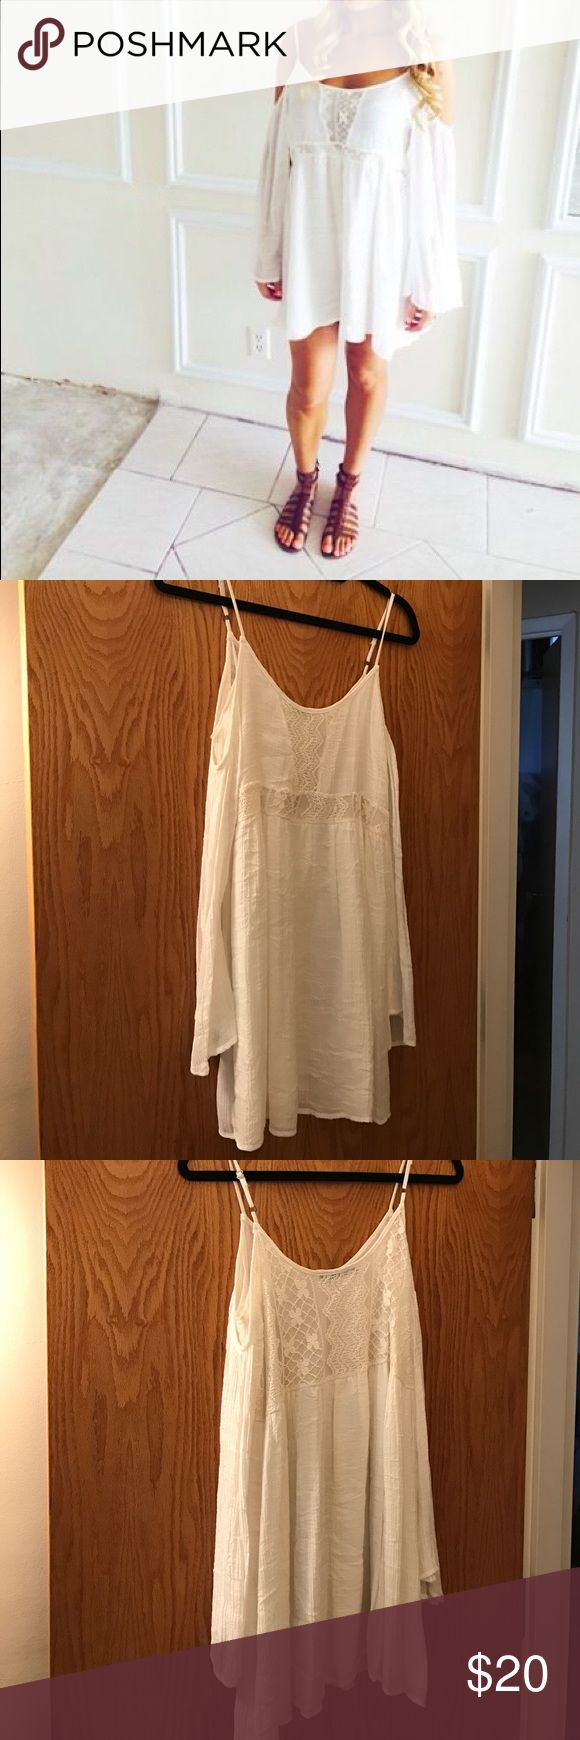 White festival mini dress - never worn Honey punch brand white linen festival dress. Open shoulder with flowy sleeves. Lace pattern on chest and waist - adorable with gladiator or strappy sandals and big jewelry! Honey Punch Dresses Mini